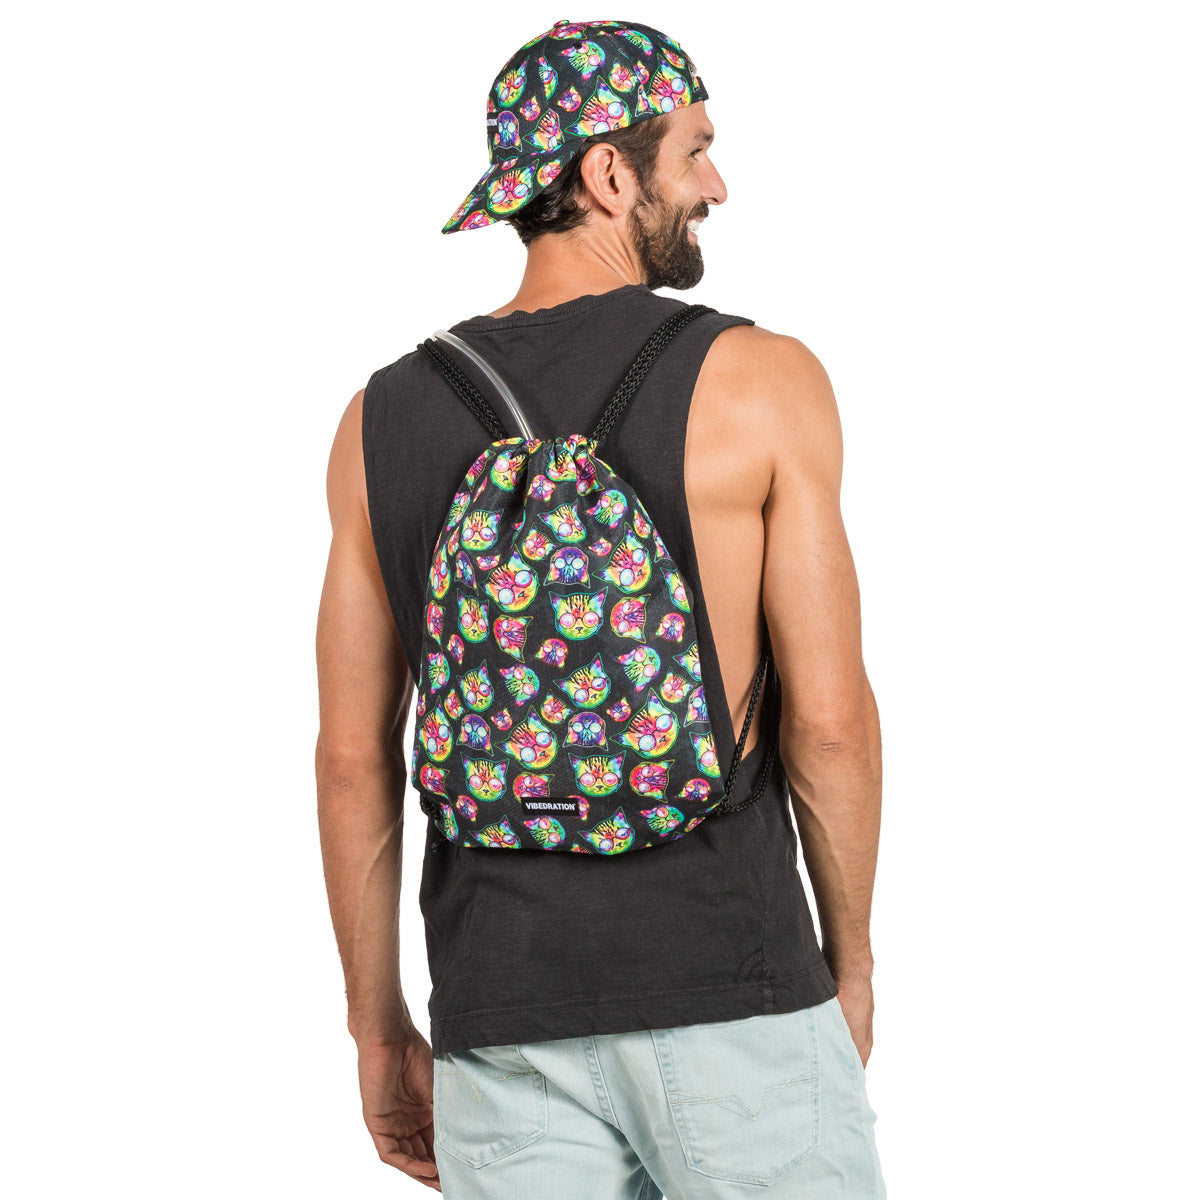 3 Liter Hydration Drawstring Backpack with Cats